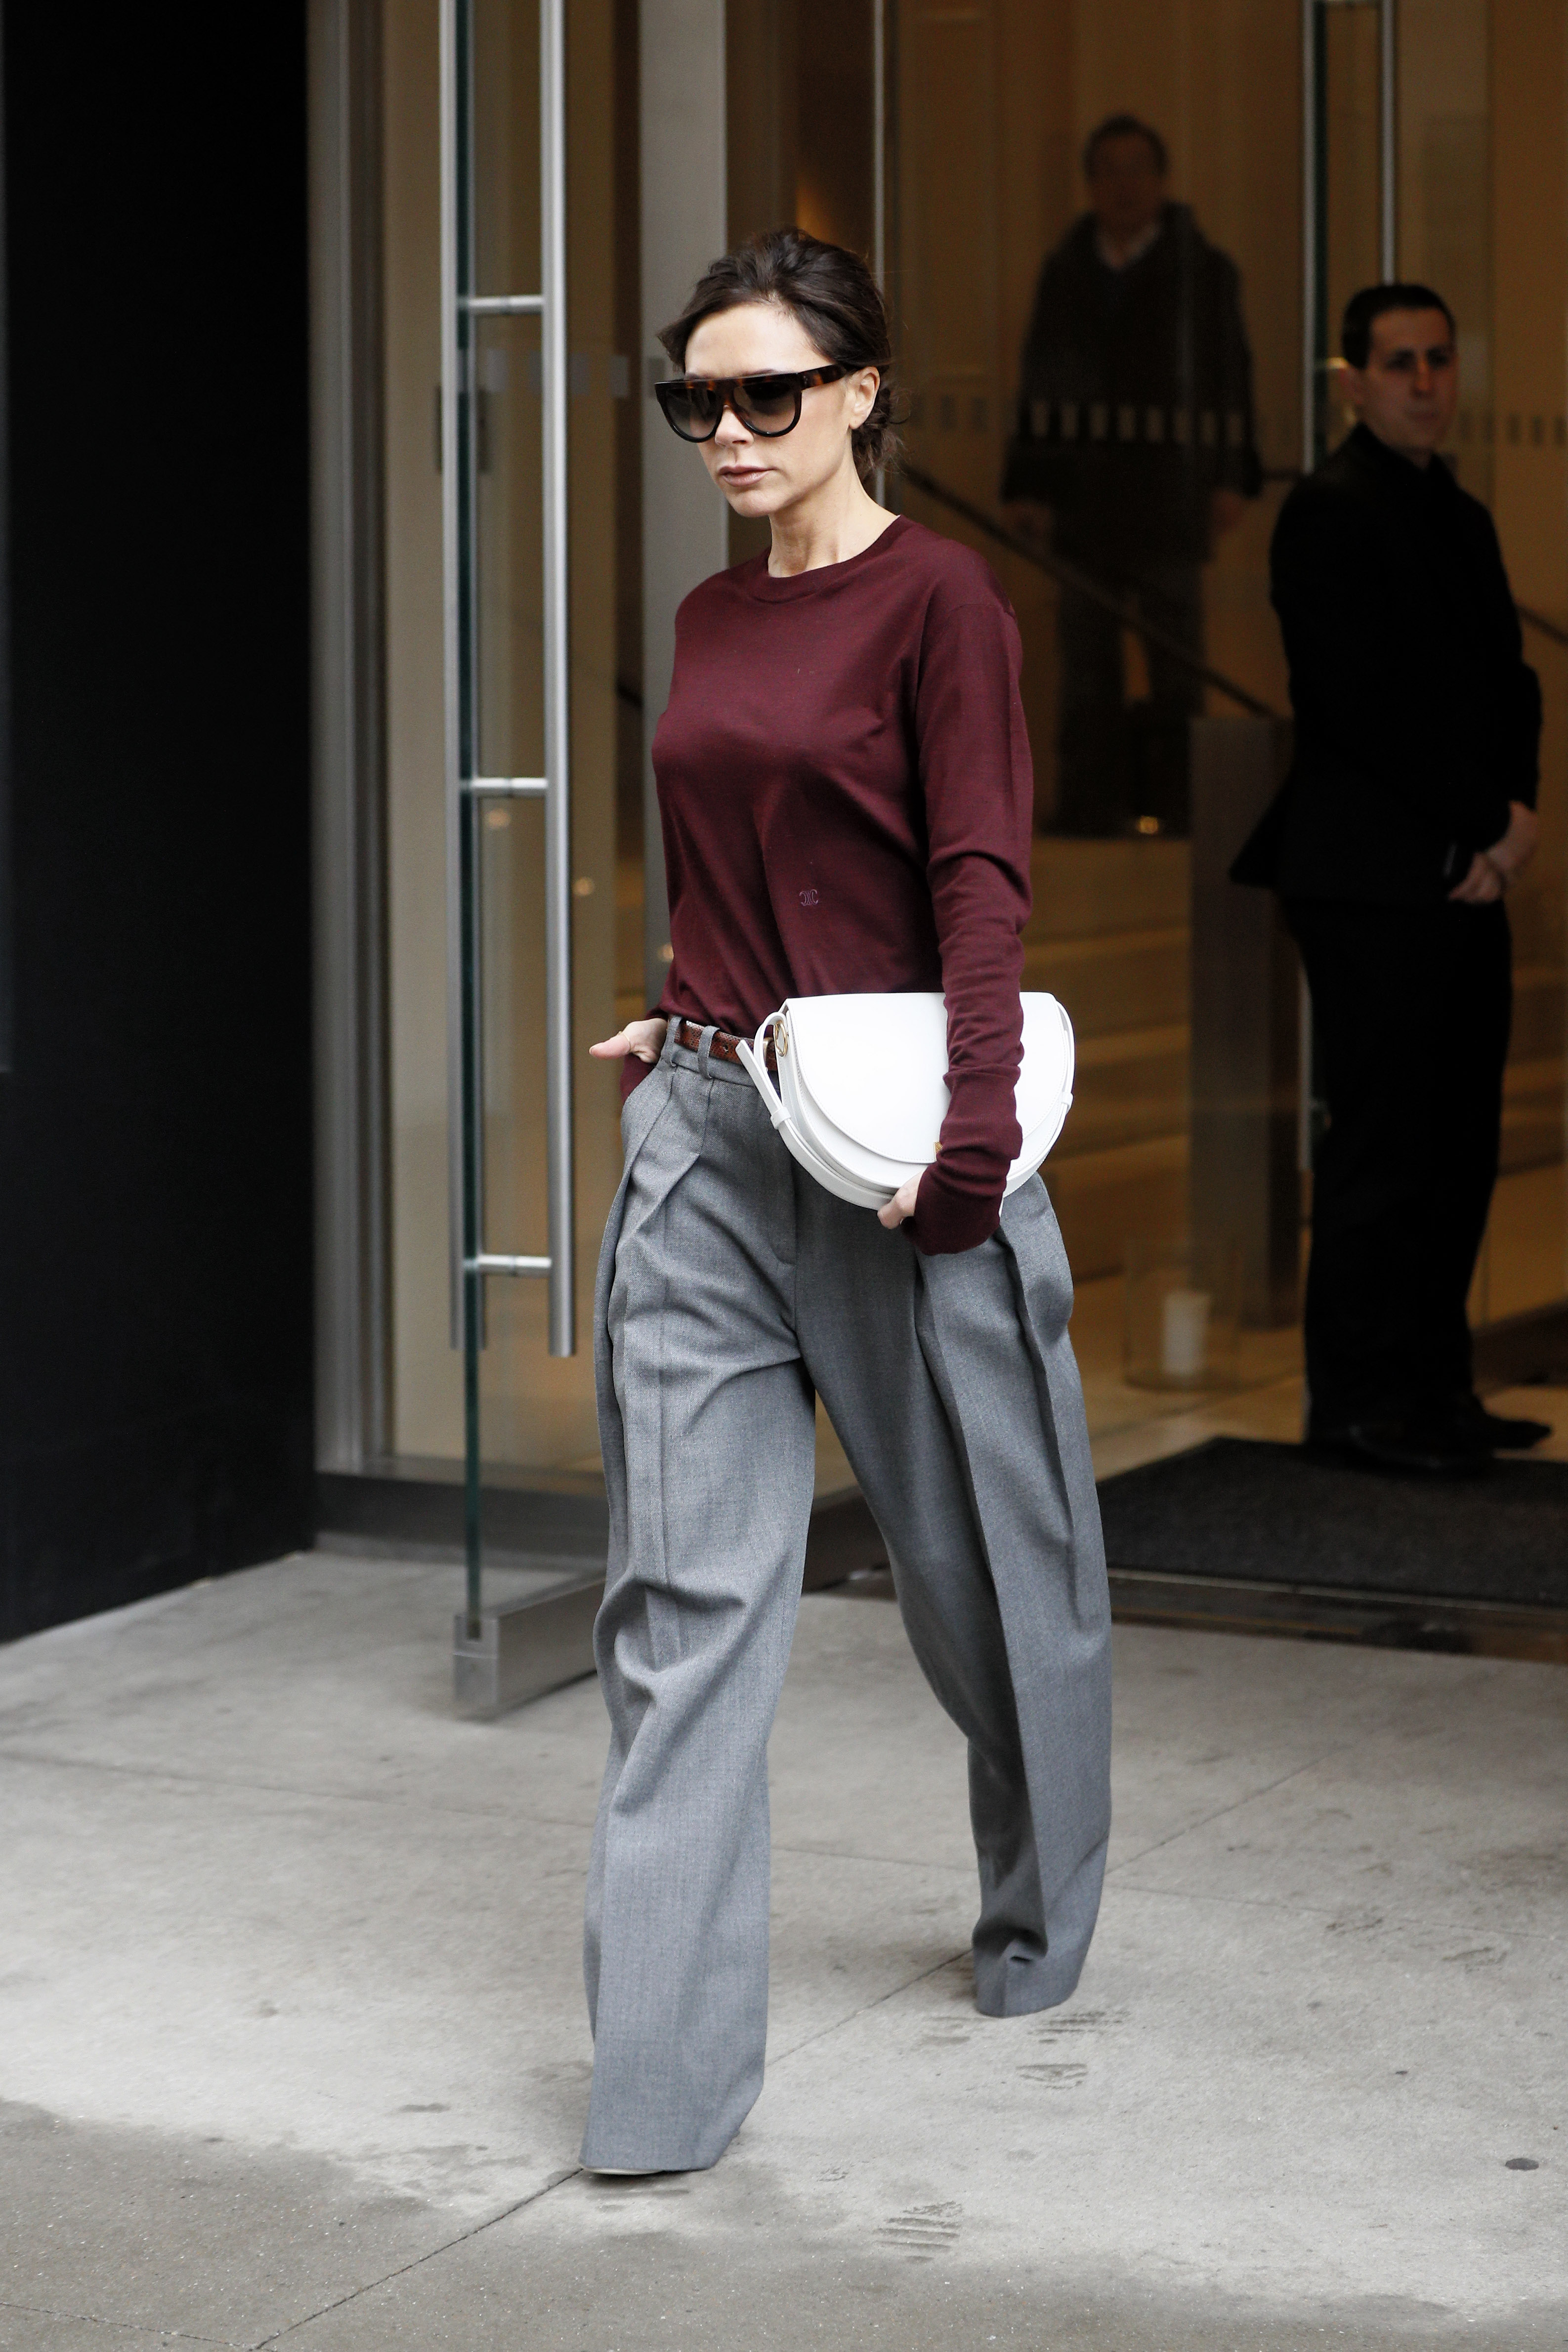 Fashion designer Victoria Beckham, wearing gray pants, burgundy sweater and white half moon purse, leaves the Edition Hotel in New York City <P> Pictured: Victoria Beckham <B>Ref: SPL1435948  070217  </B><BR/> Picture by: Christopher Peterson/Splash News<BR/> </P><P> <B>Splash News and Pictures</B><BR/> Los Angeles:310-821-2666<BR/> New York:212-619-2666<BR/> London:870-934-2666<BR/> <span id=